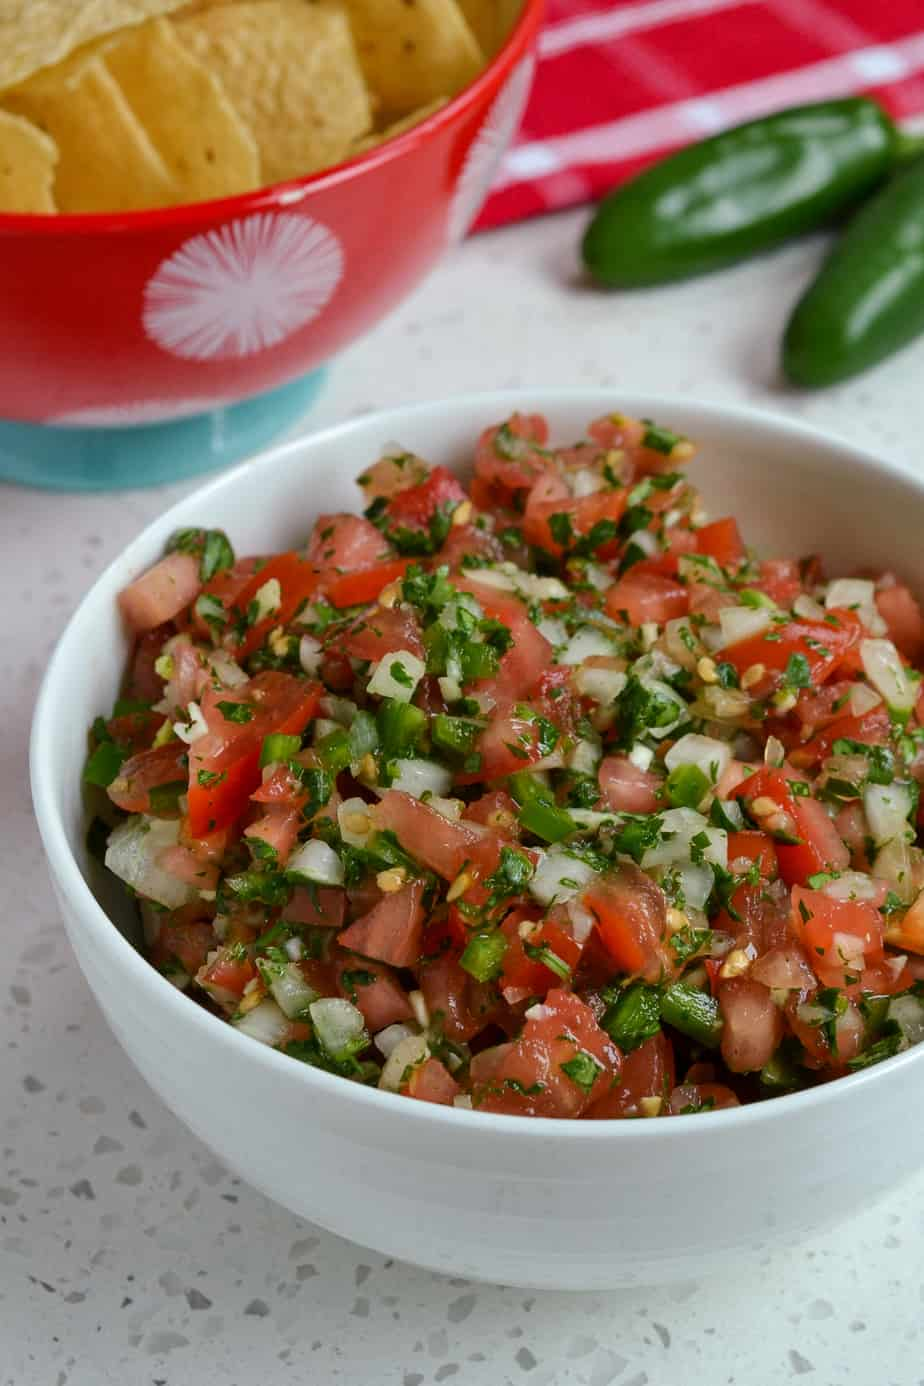 Bowl of Pico de Gallo with tortilla chips on the side.